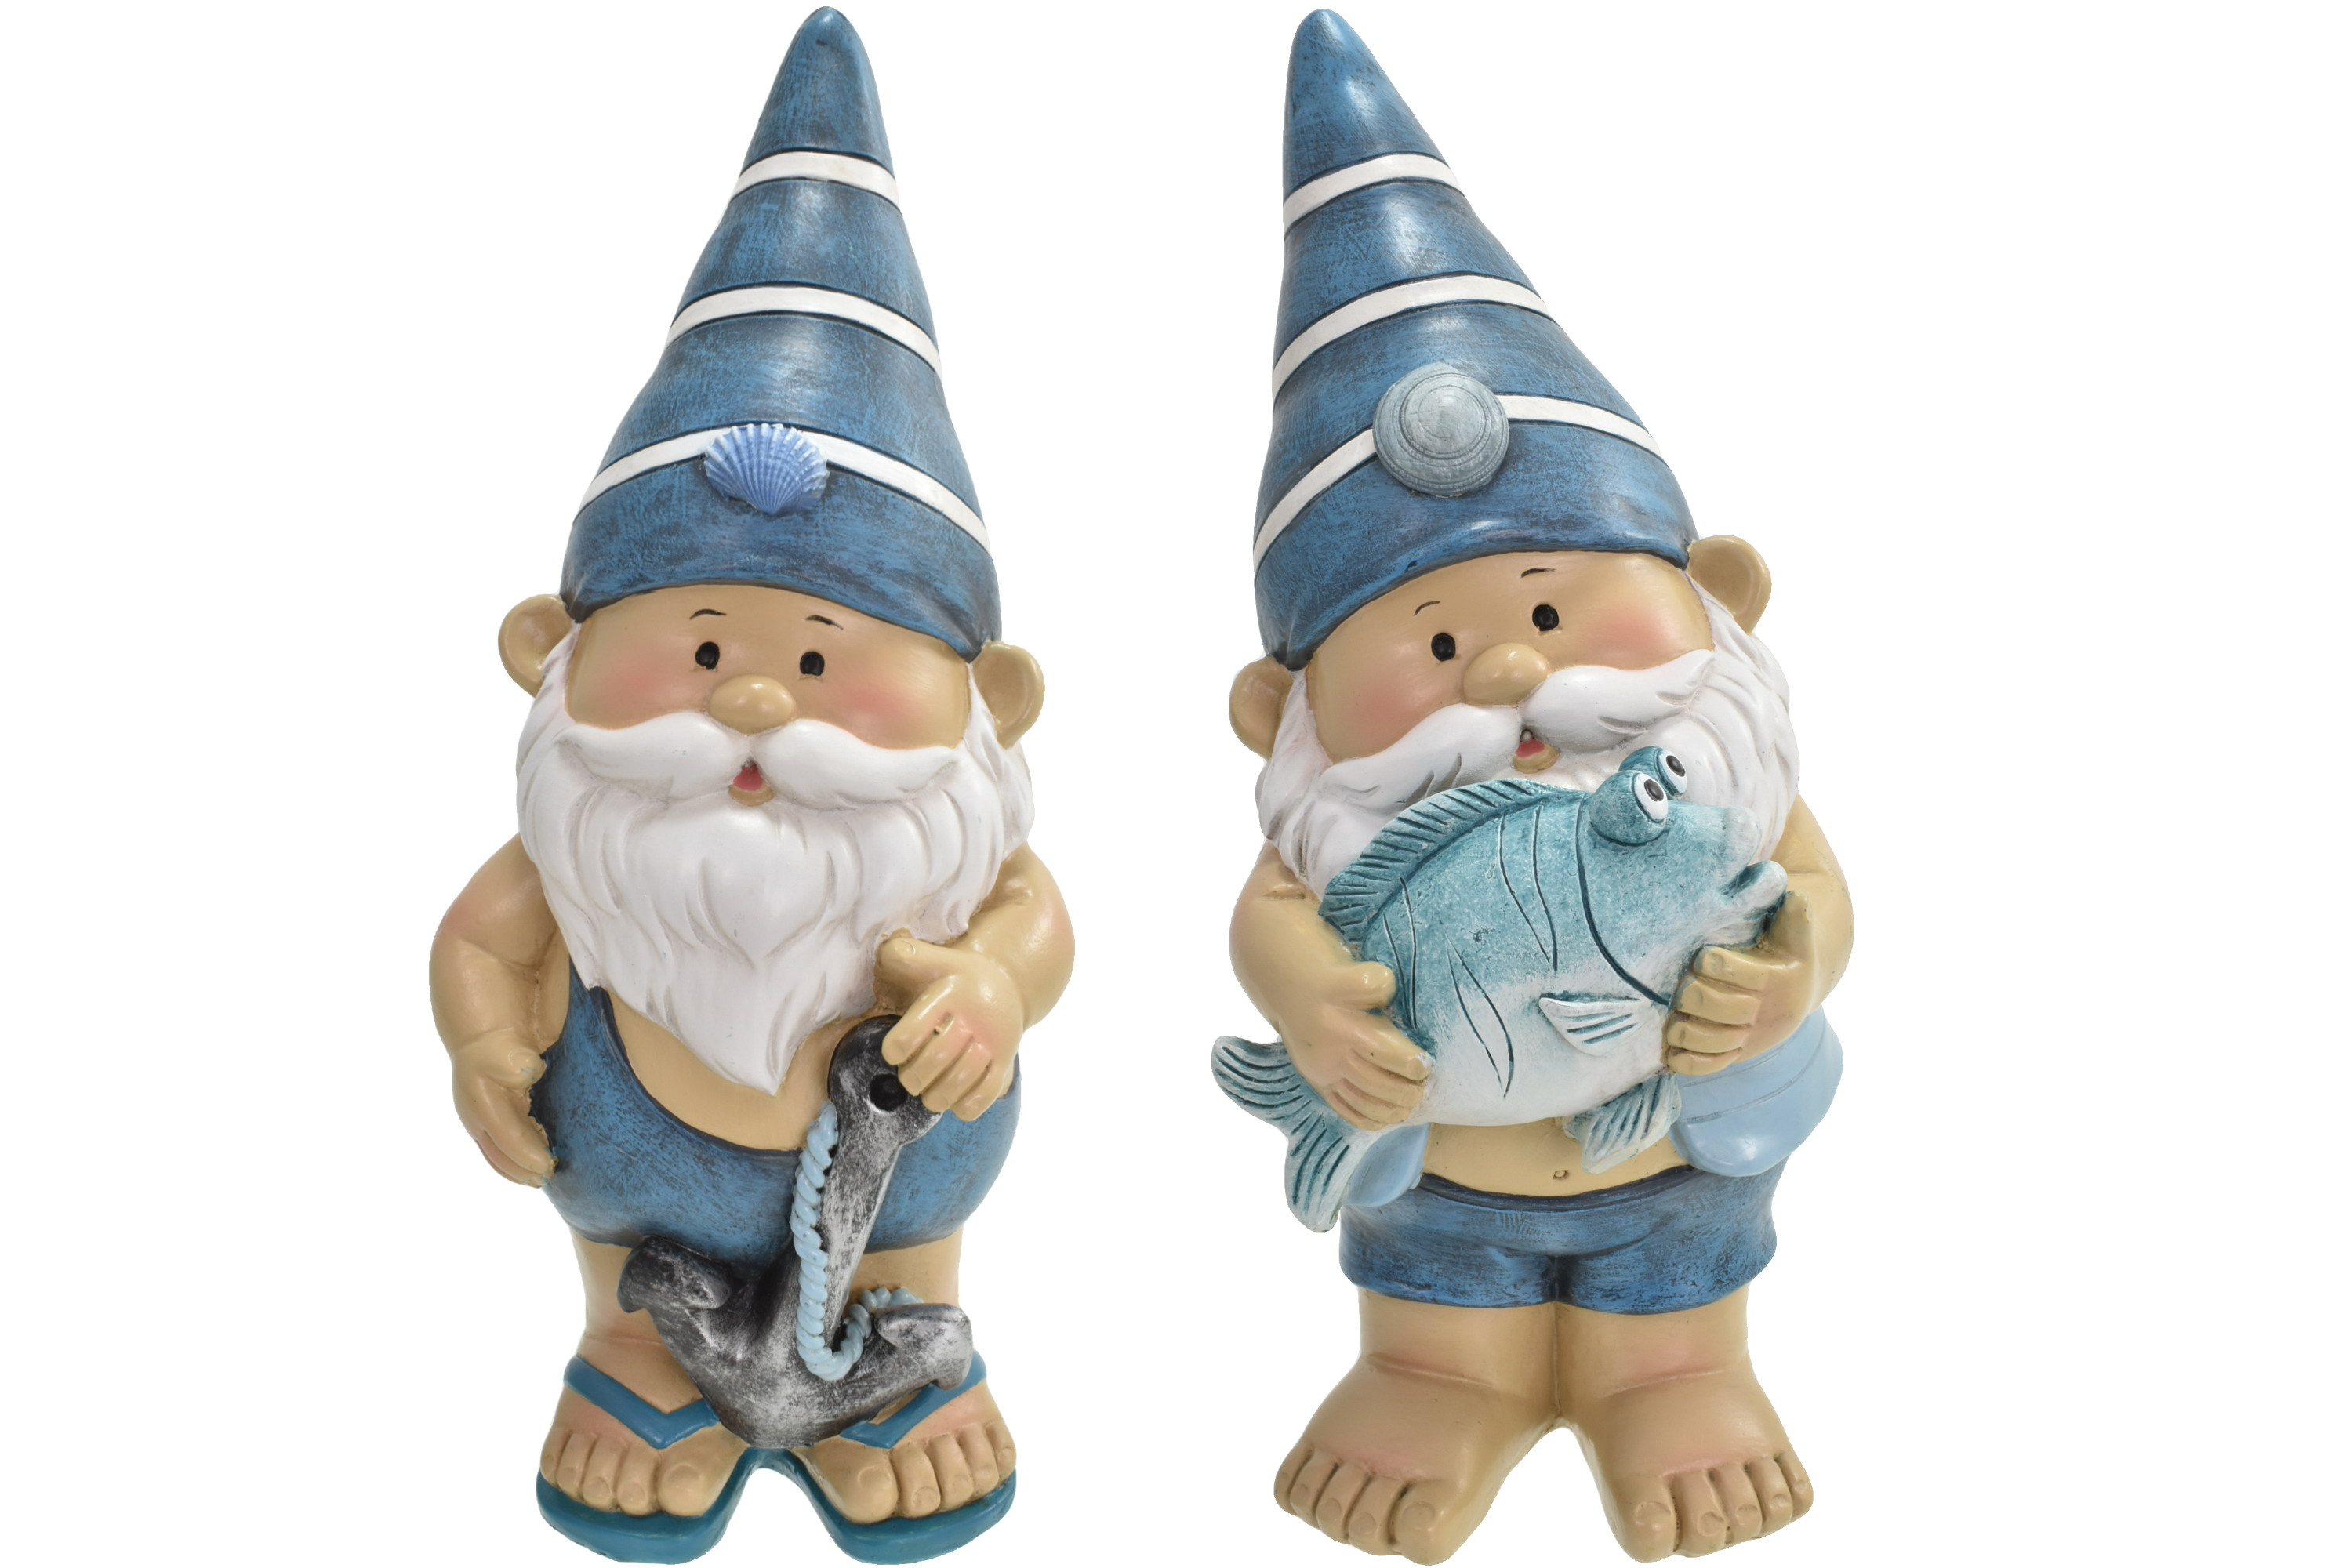 21cm Gnautical Beach Gnome Stripy Hat 2 Asst Designs